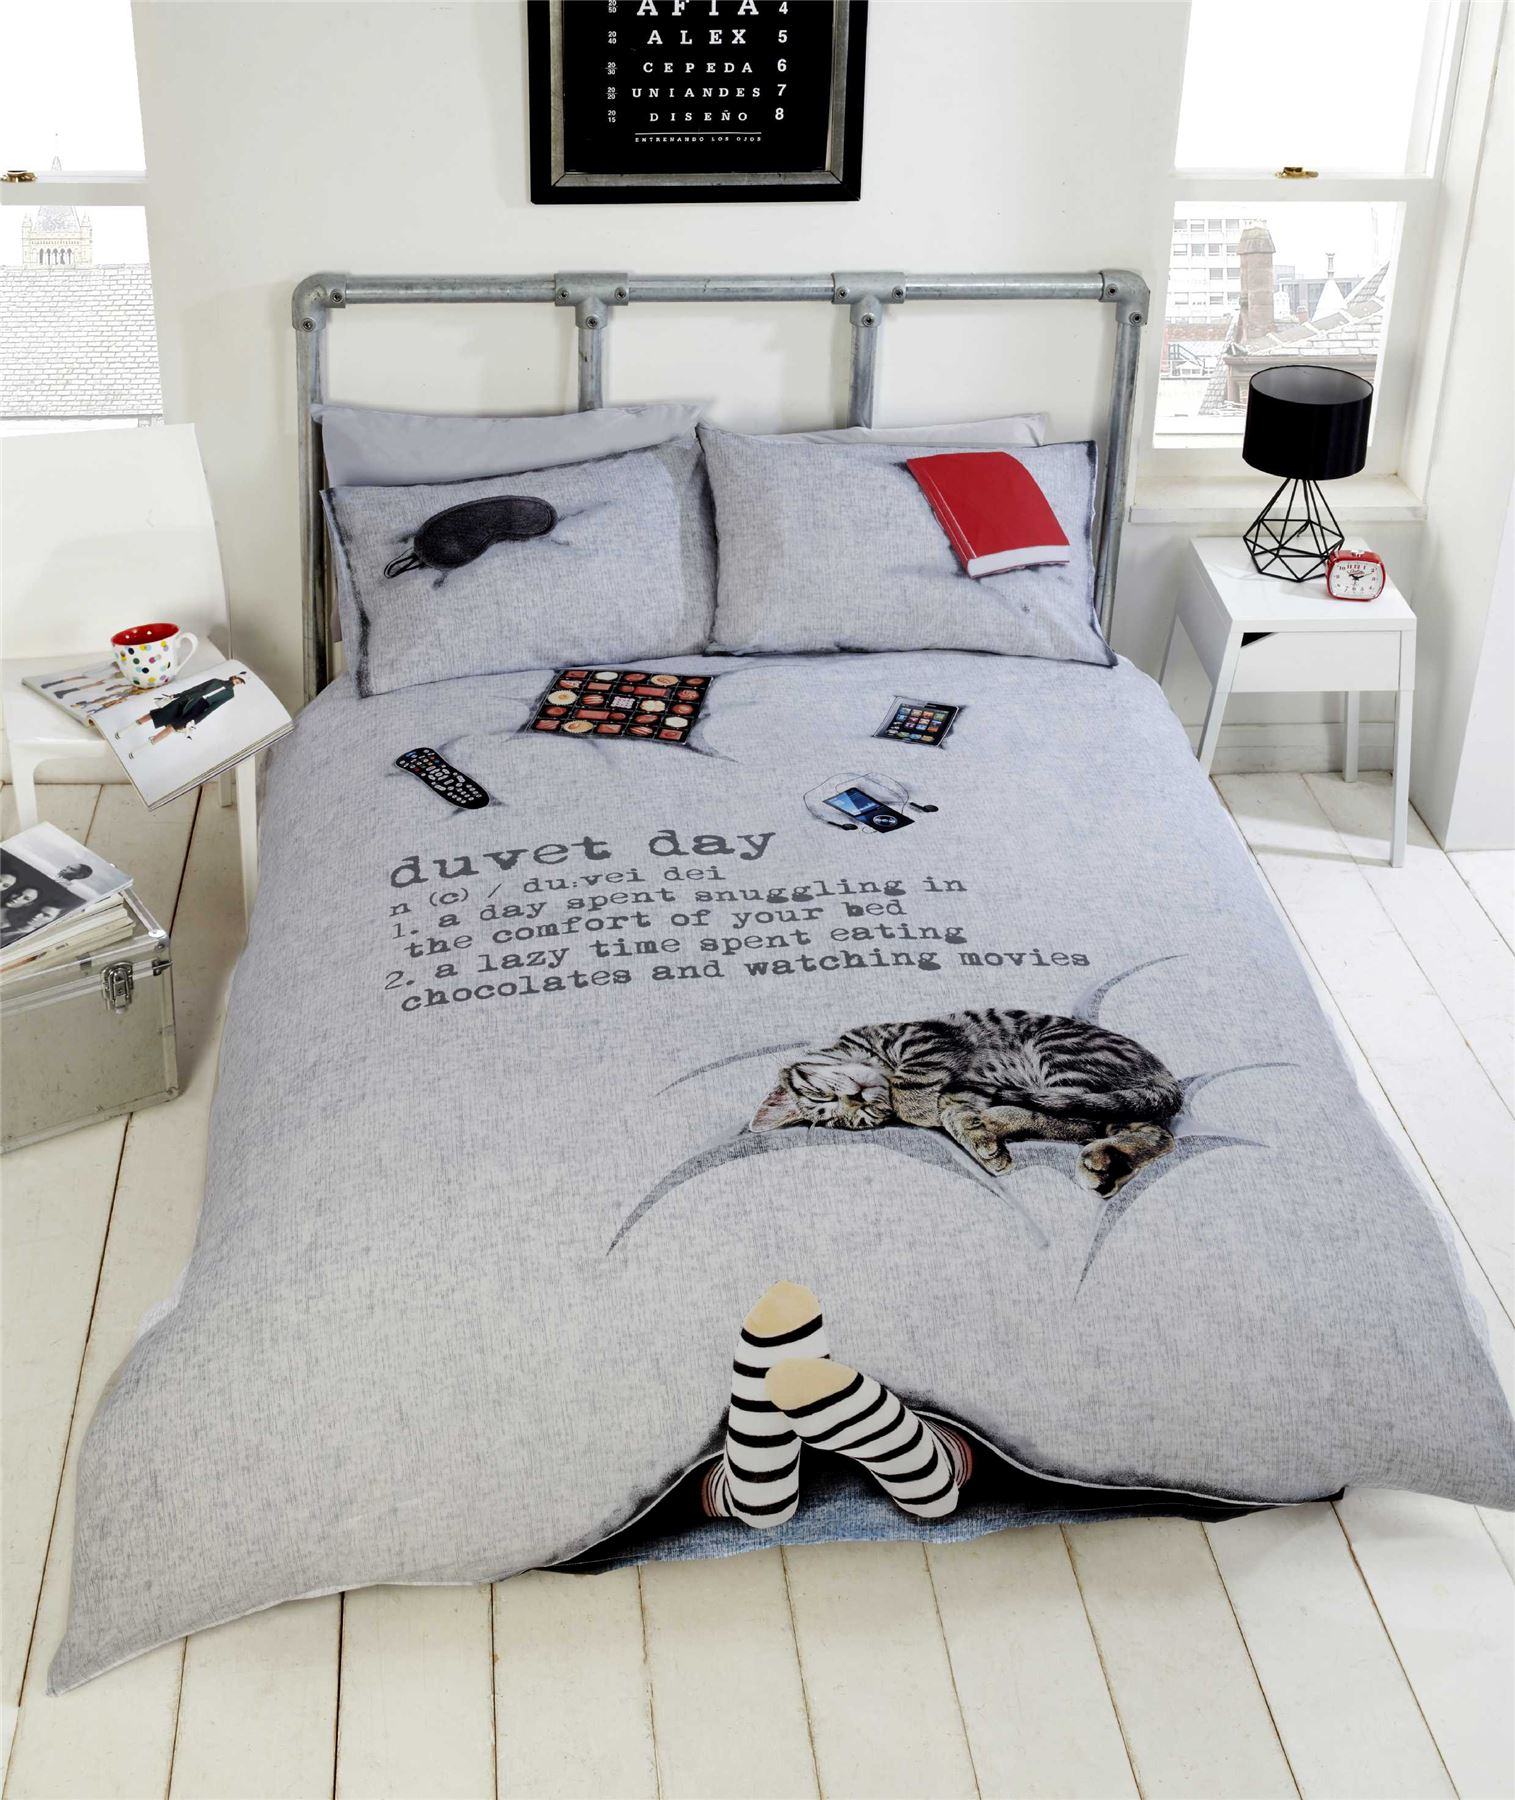 quilt duvet cover  pillowcase bedding bed sets teenagers fun  - quiltduvetcoveramppillowcasebeddingbedsets